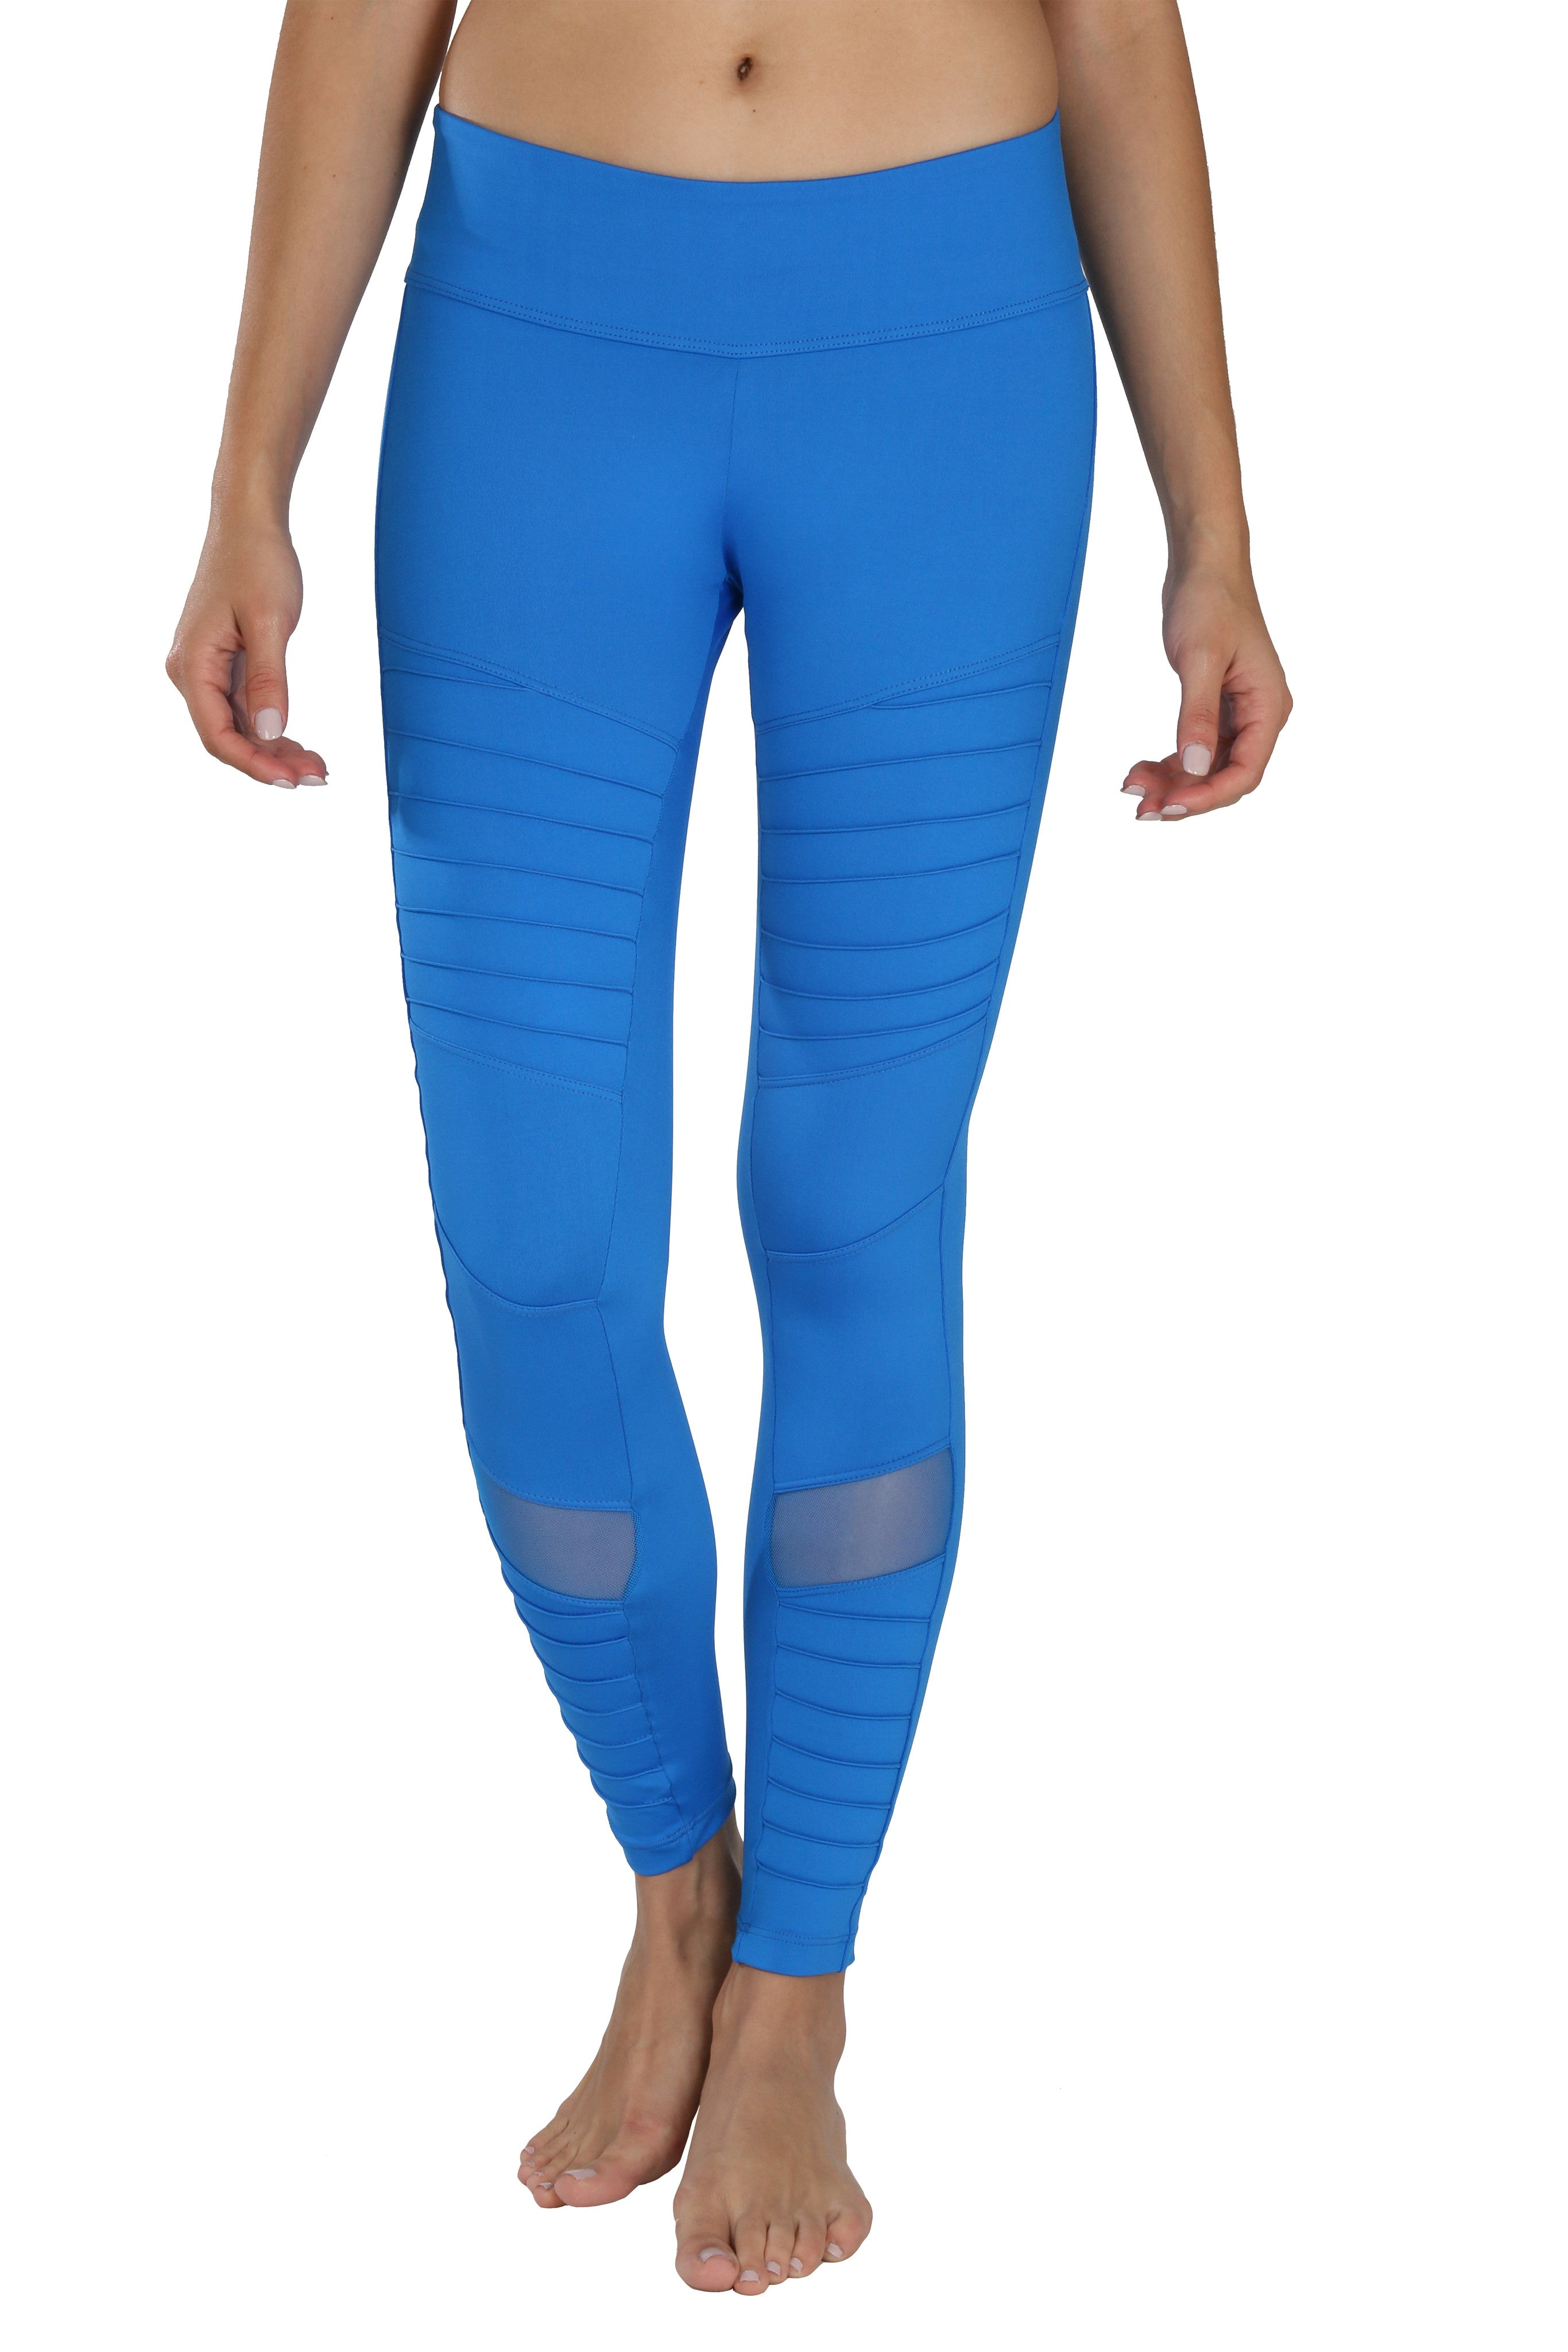 df822ee35c ... Blue mesh moto yoga pants - comfy and high quality leggings for the gym  and the ...